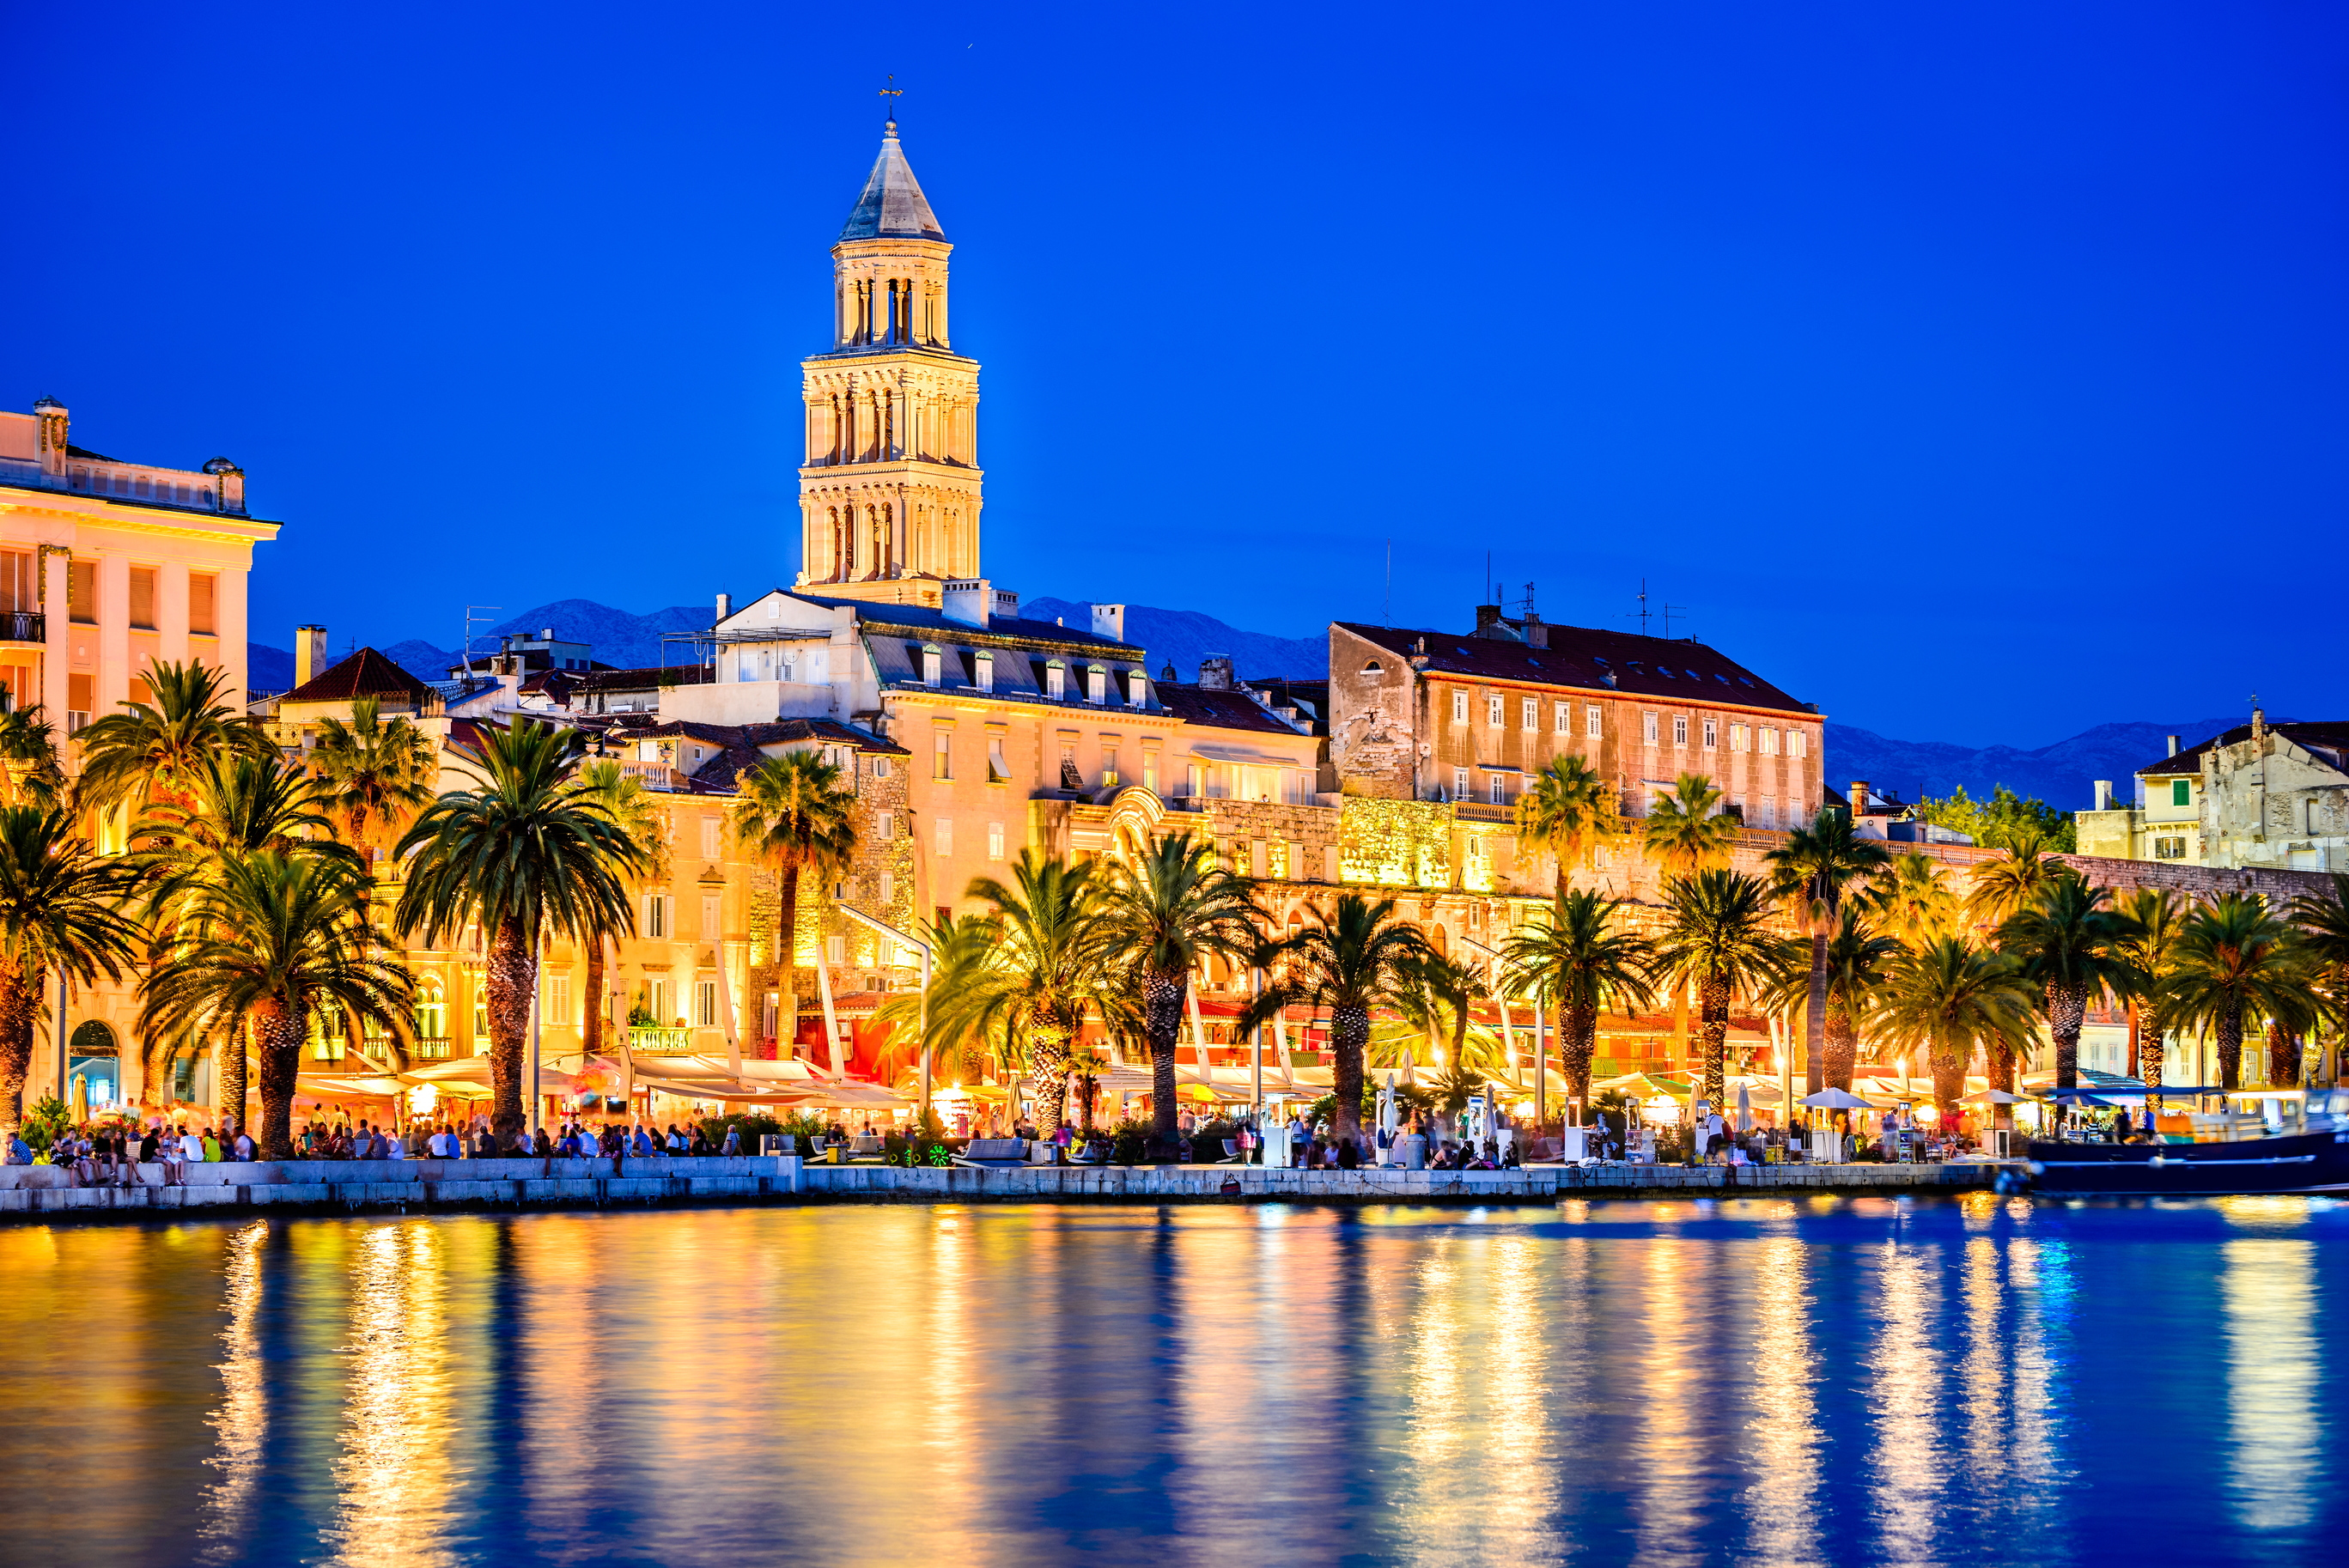 split-croatia-river-night.jpg?mtime=20190107224826#asset:104384